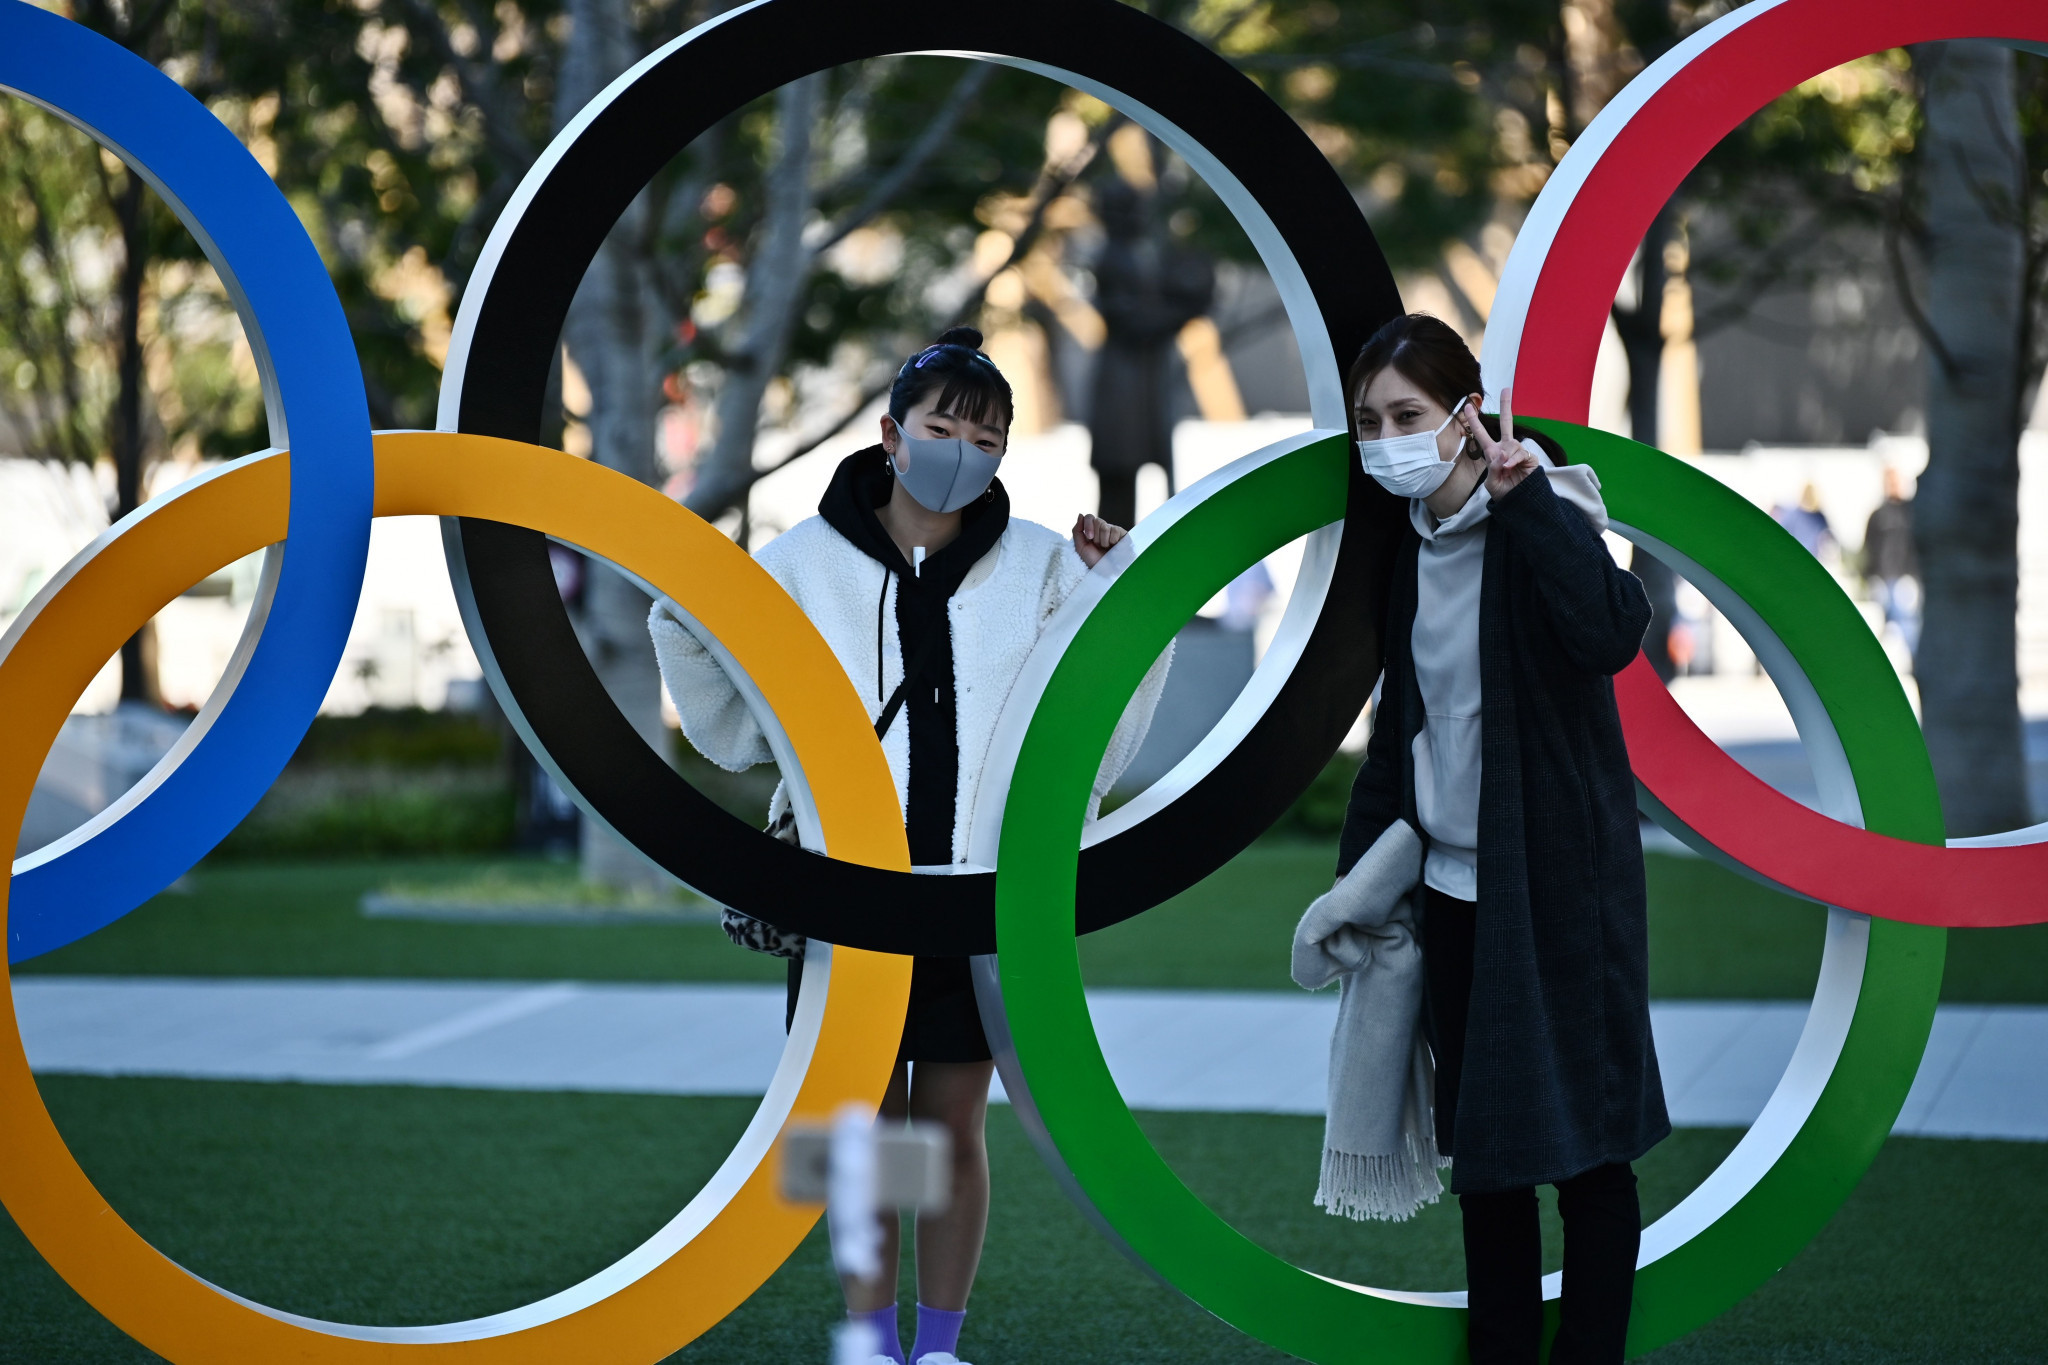 The outbreak of coronavirus has significantly impacted preparations for the Tokyo 2020 Olympic Games ©Getty Images